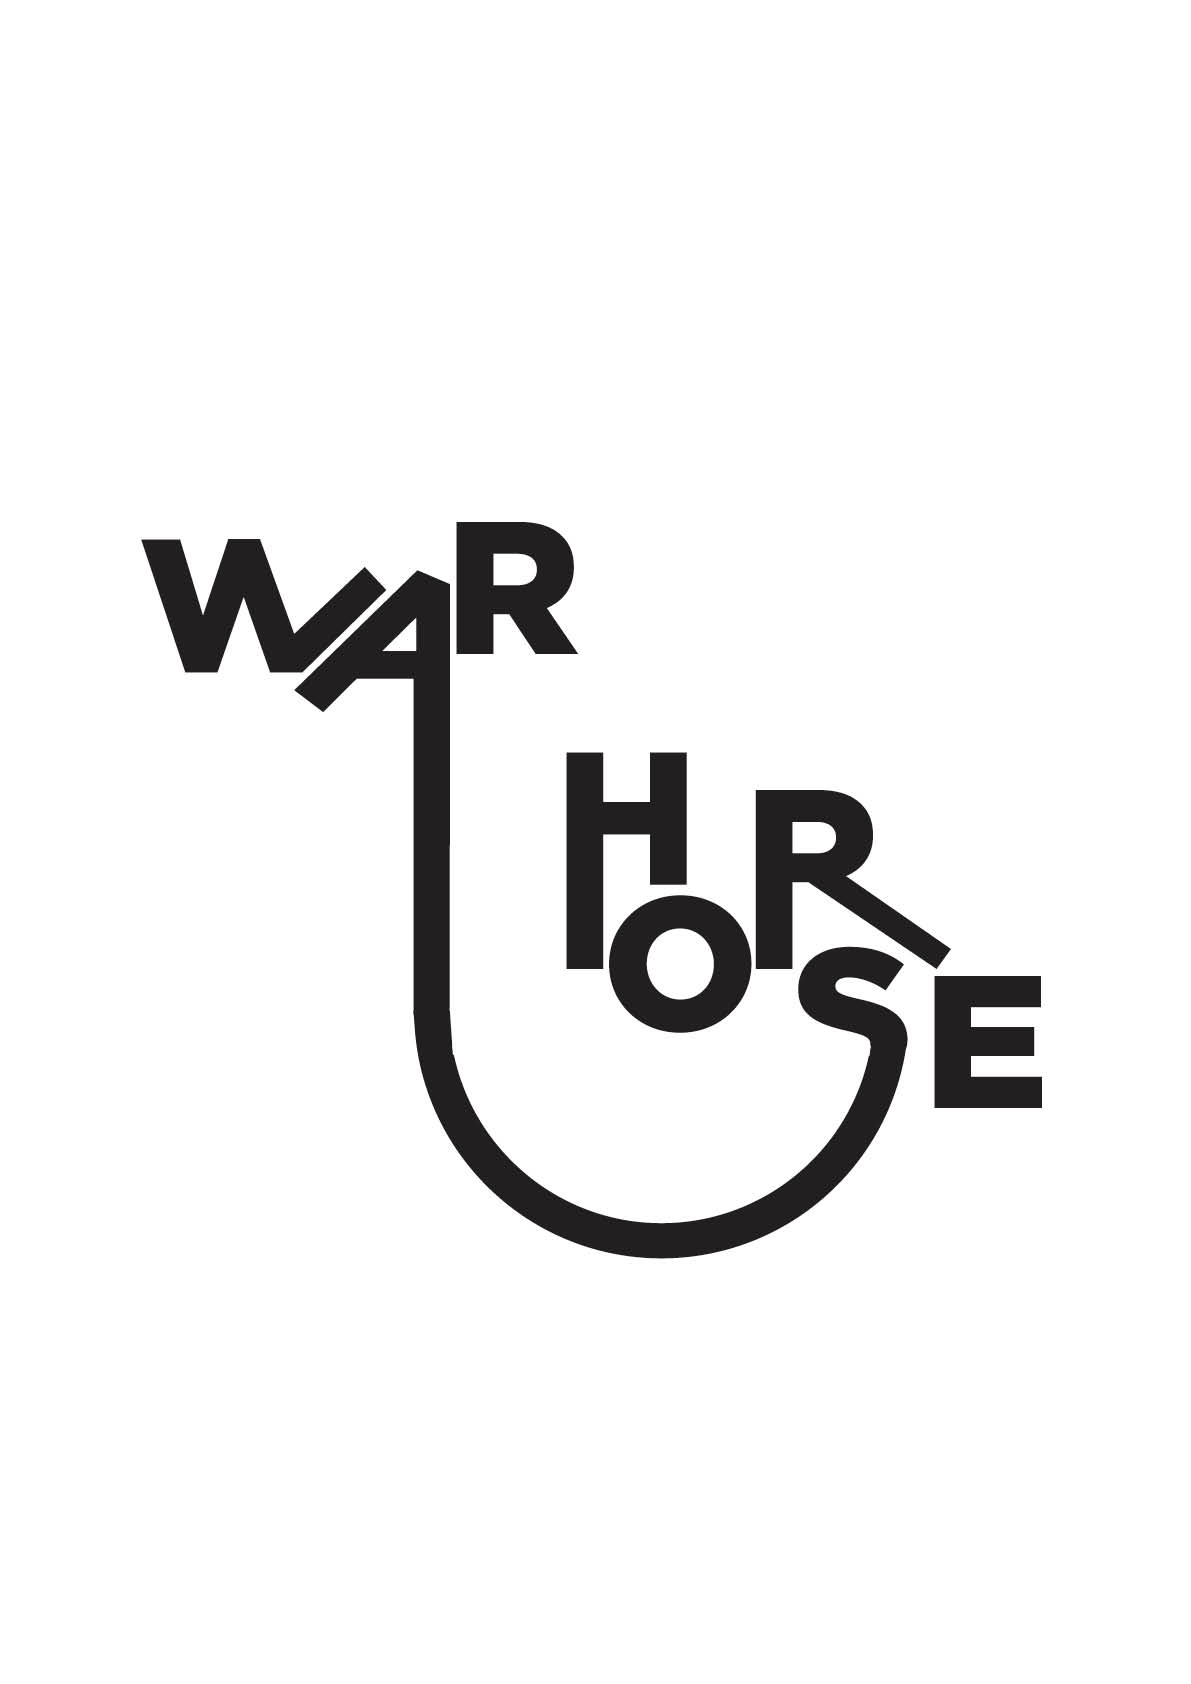 Brief 6, creating a type package for War Horse.